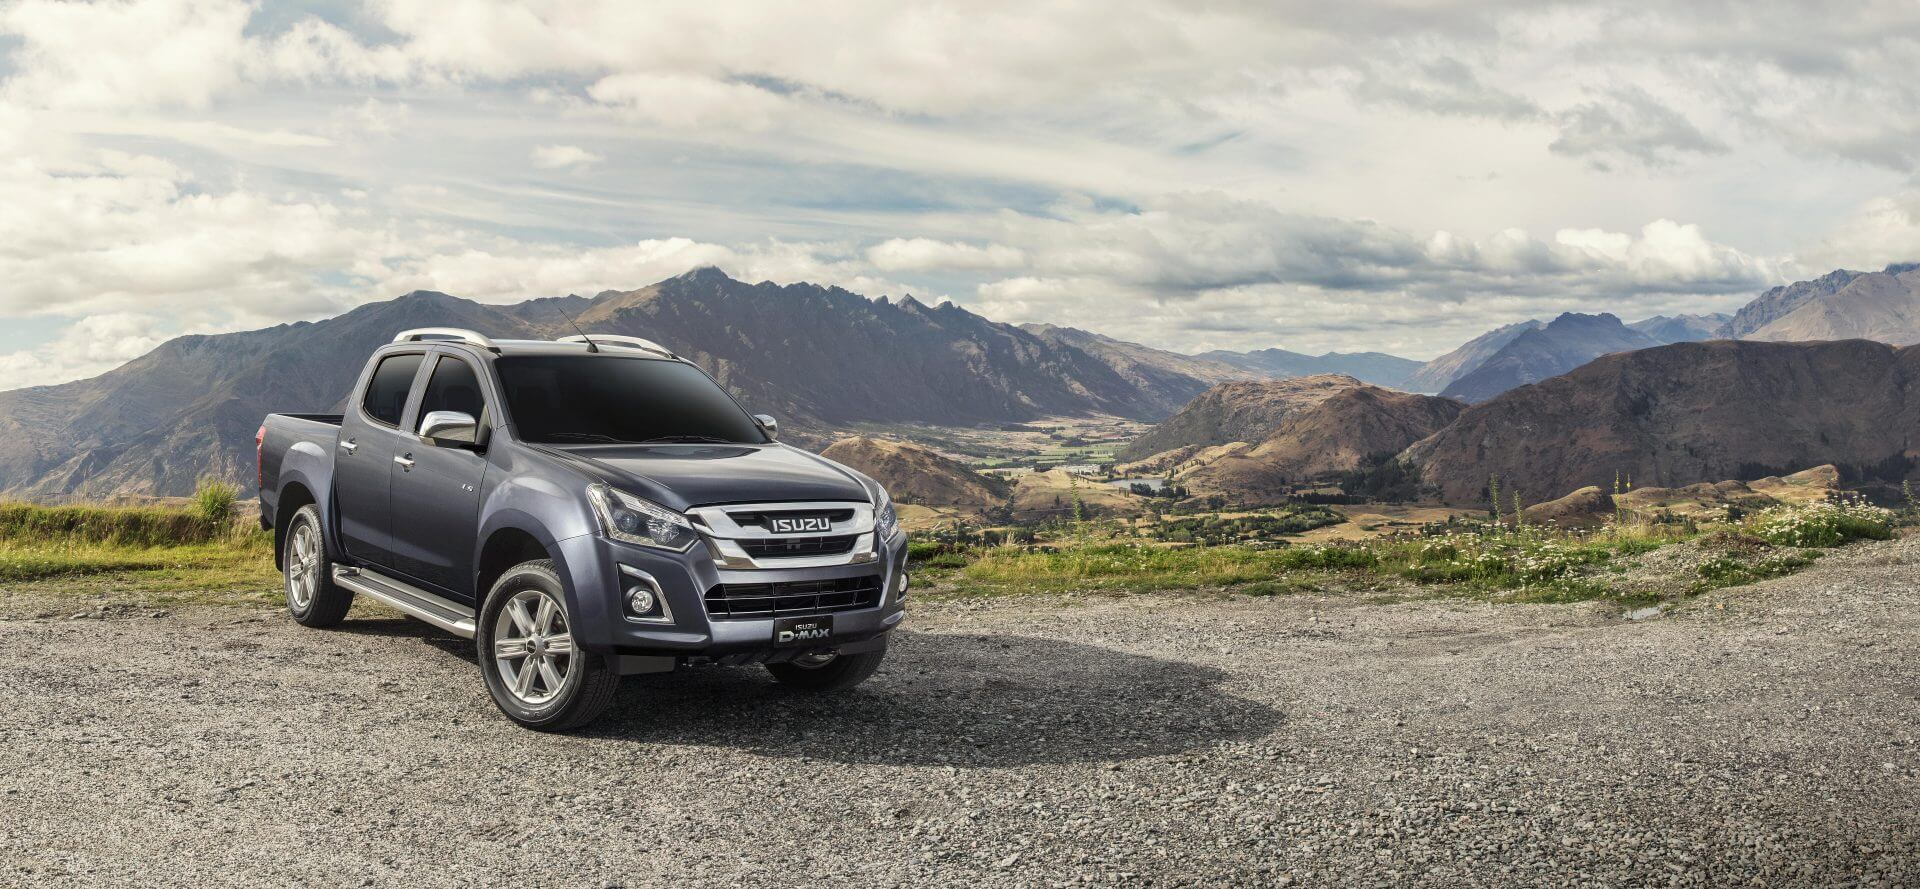 16MY-41B-ISUZU_D-MAX_Mountain_view_EU_LHD